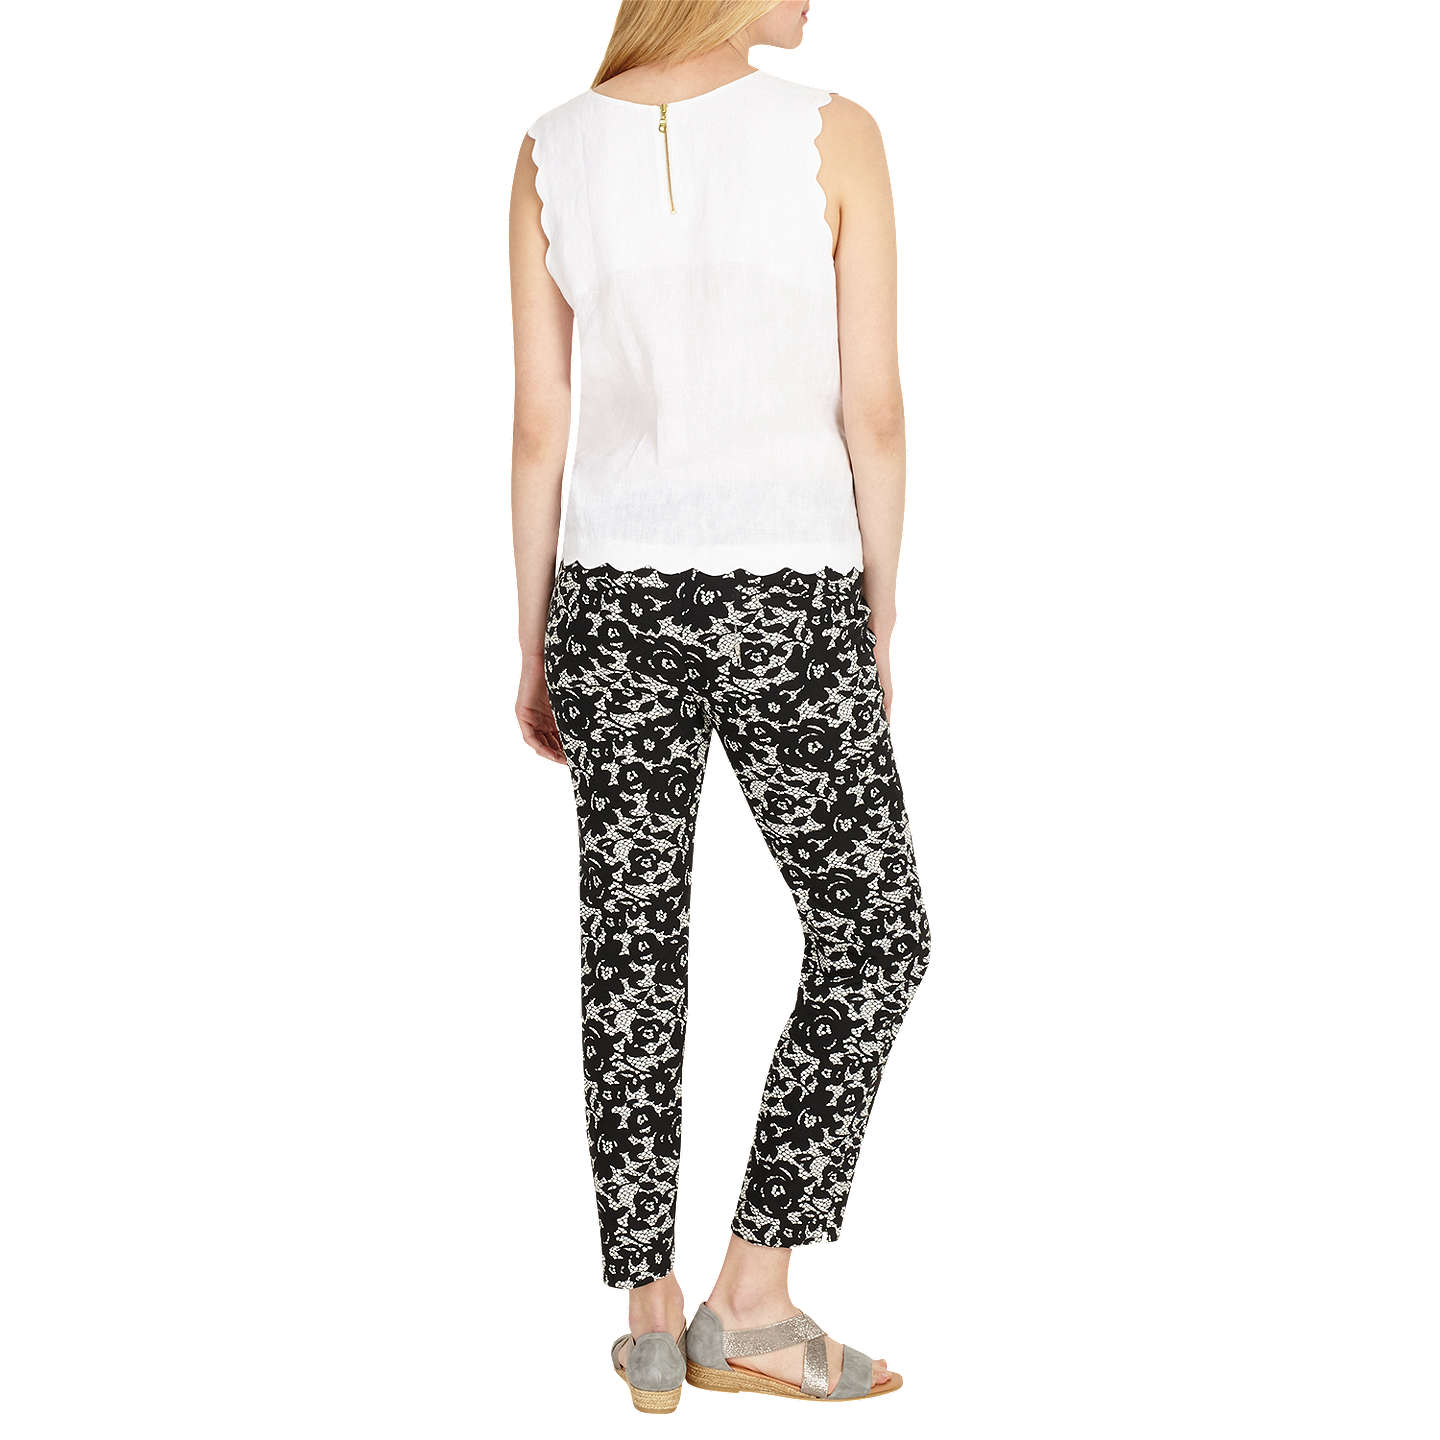 BuyPhase Eight Elise Lace Trousers, Ivory/Black, 8 Online at johnlewis.com